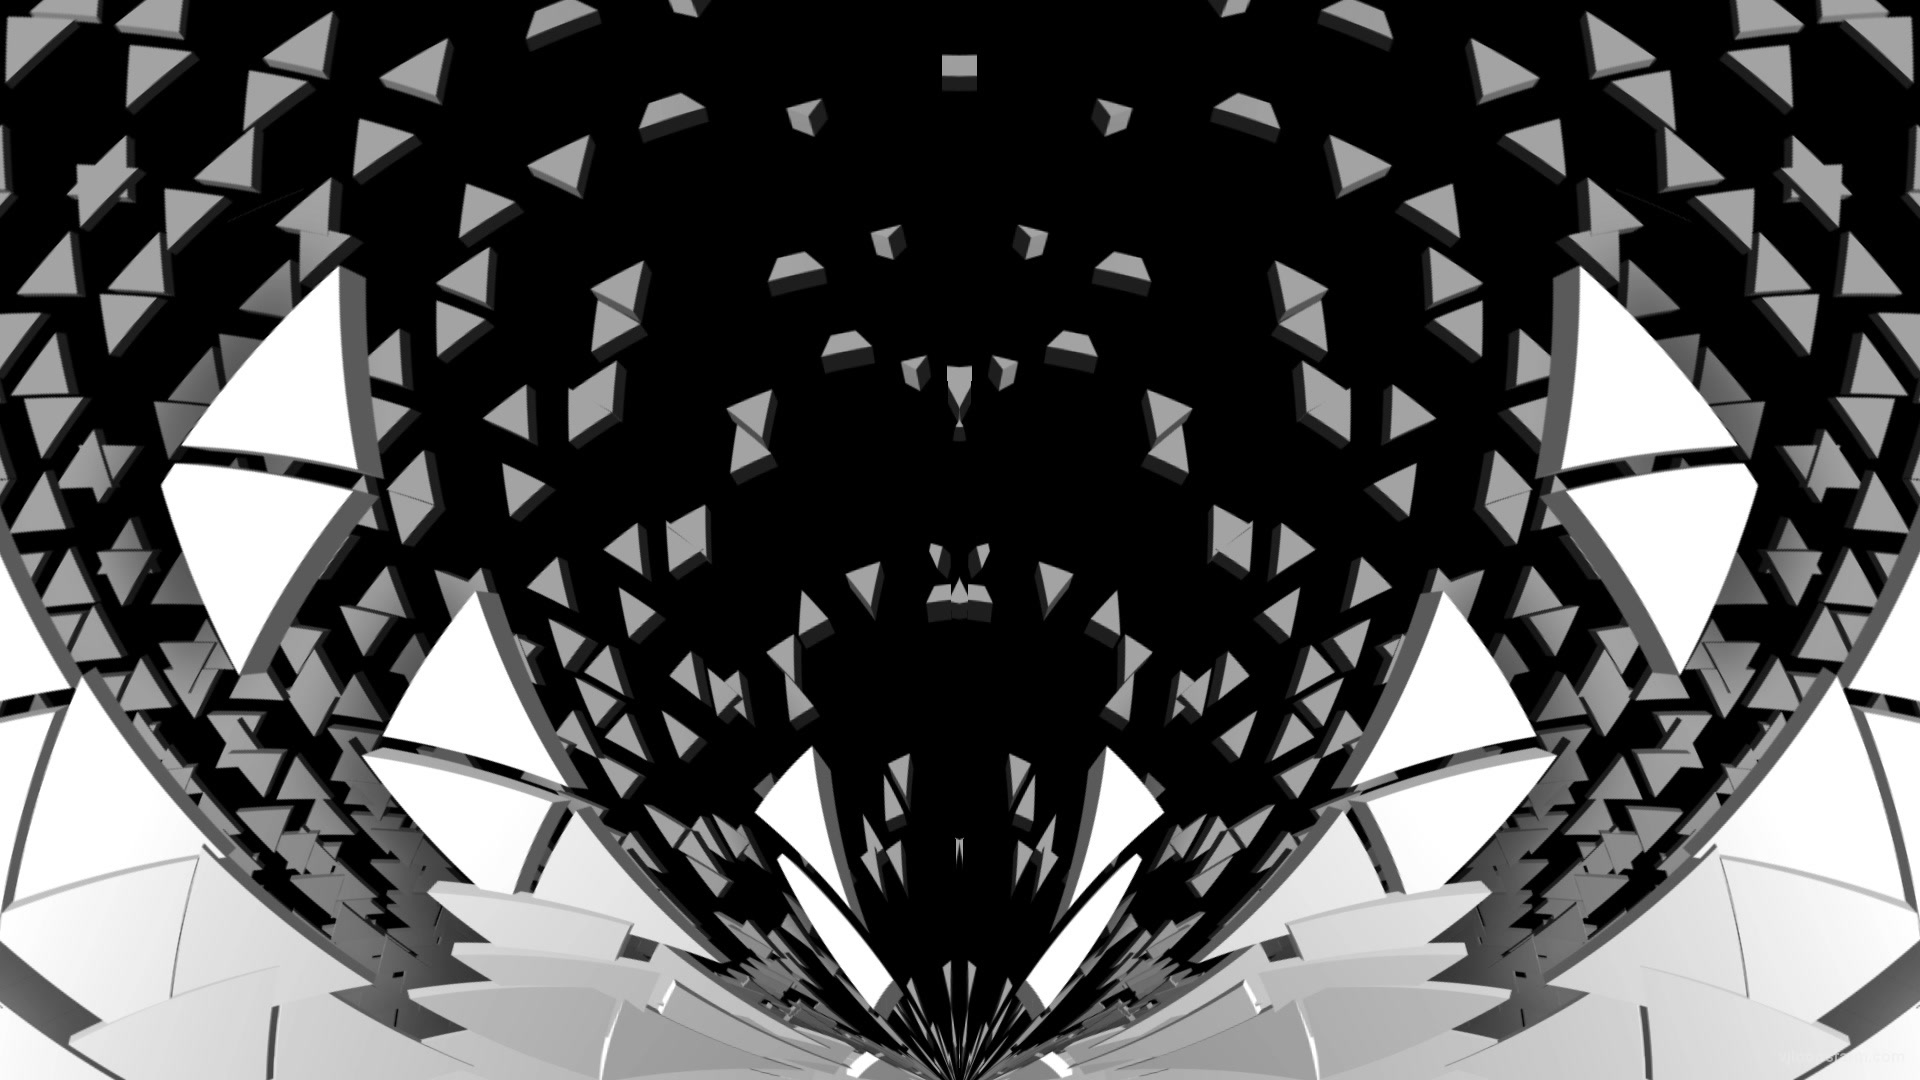 Gate Portal Wings with displace effect video art vj loop transition for 3d  mapping   Download at VJ Loops Farm